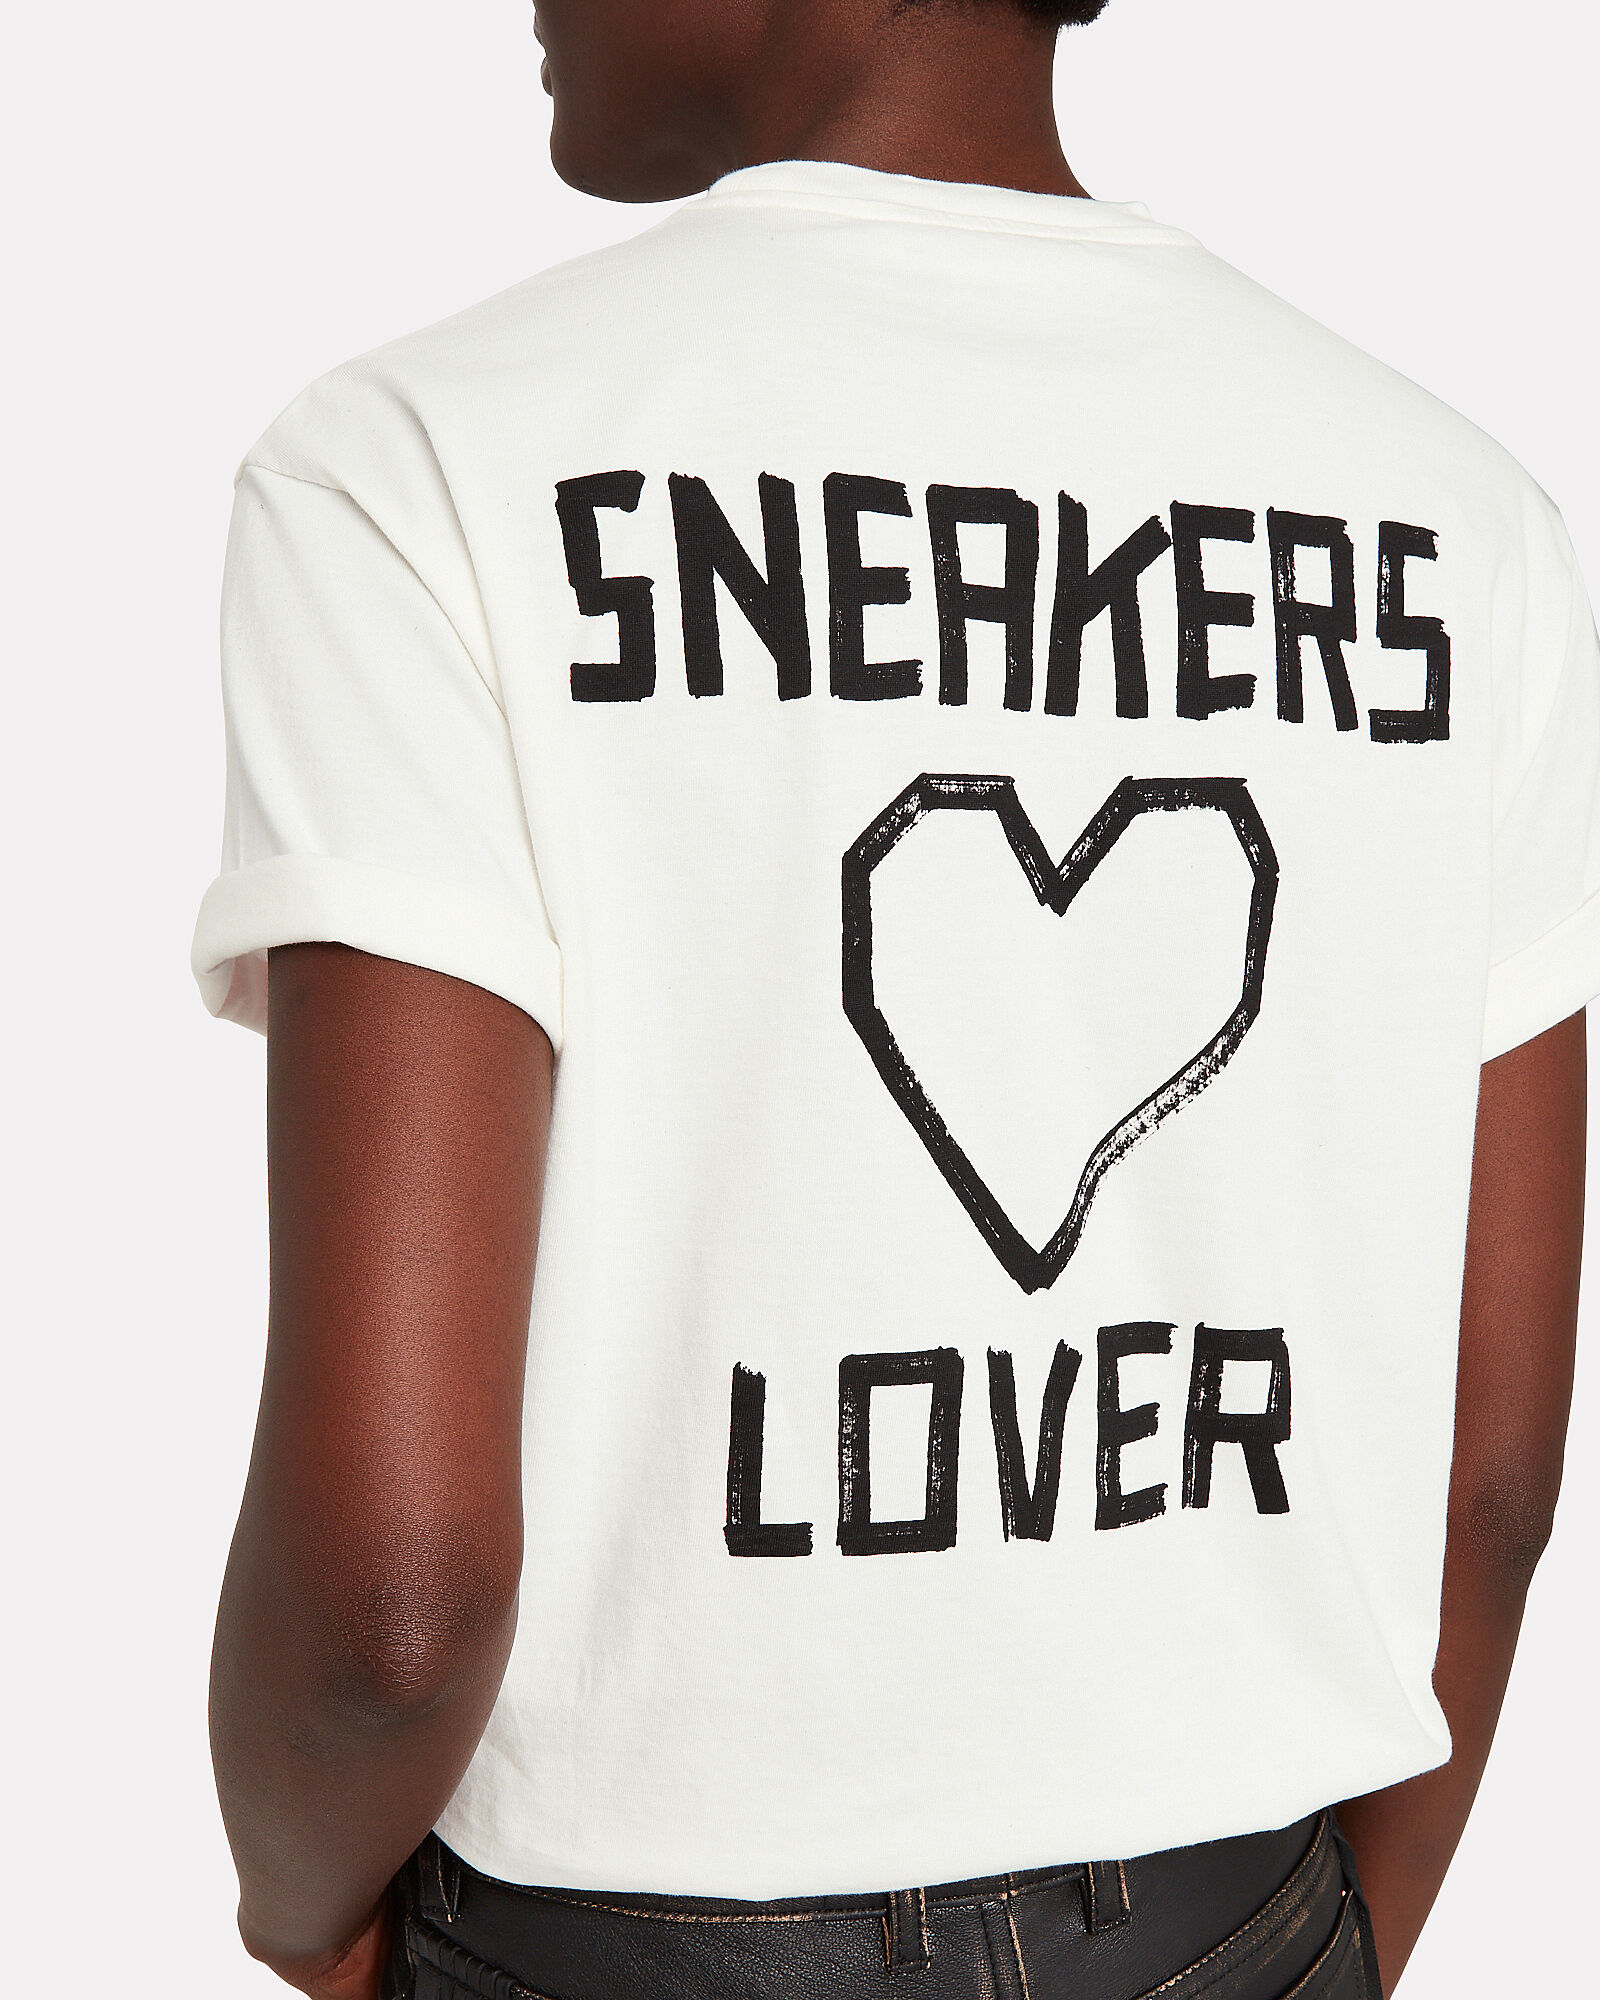 Sneaker Lovers Cotton T-Shirt, WHITE, hi-res